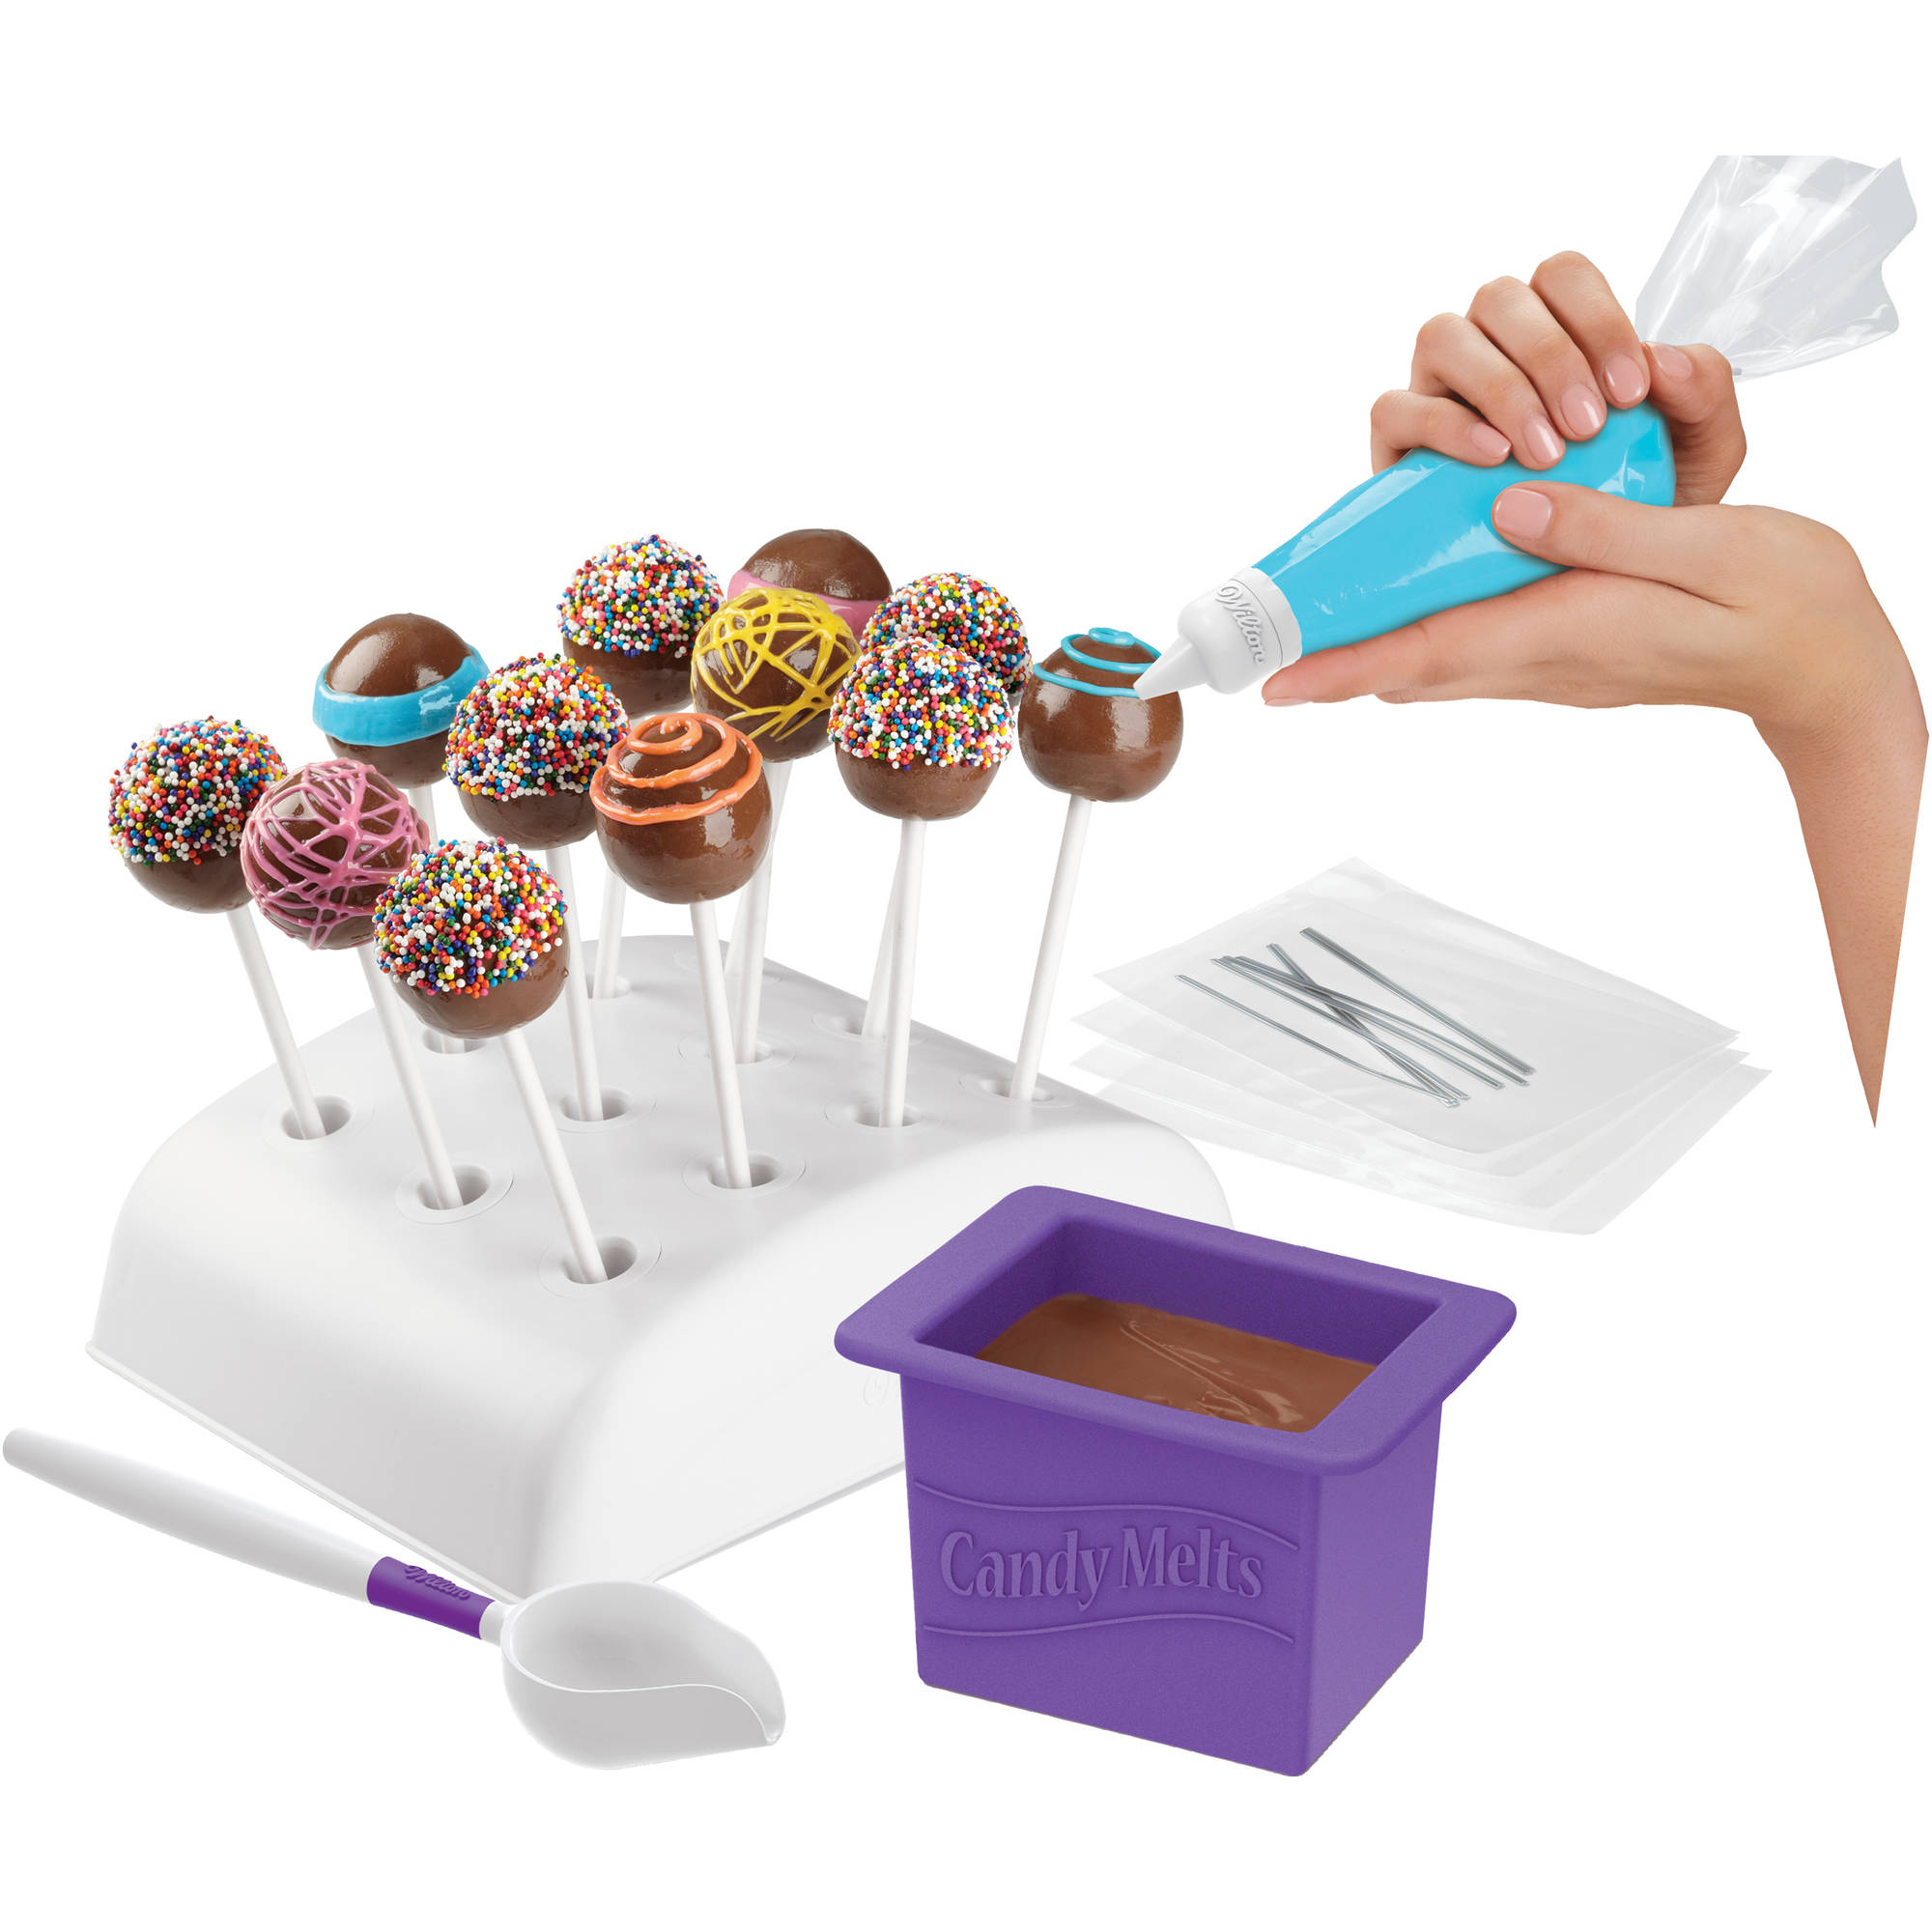 Wilton Candy Melts Dip 'N Decorate Decorating Essentials Set 2104-0032